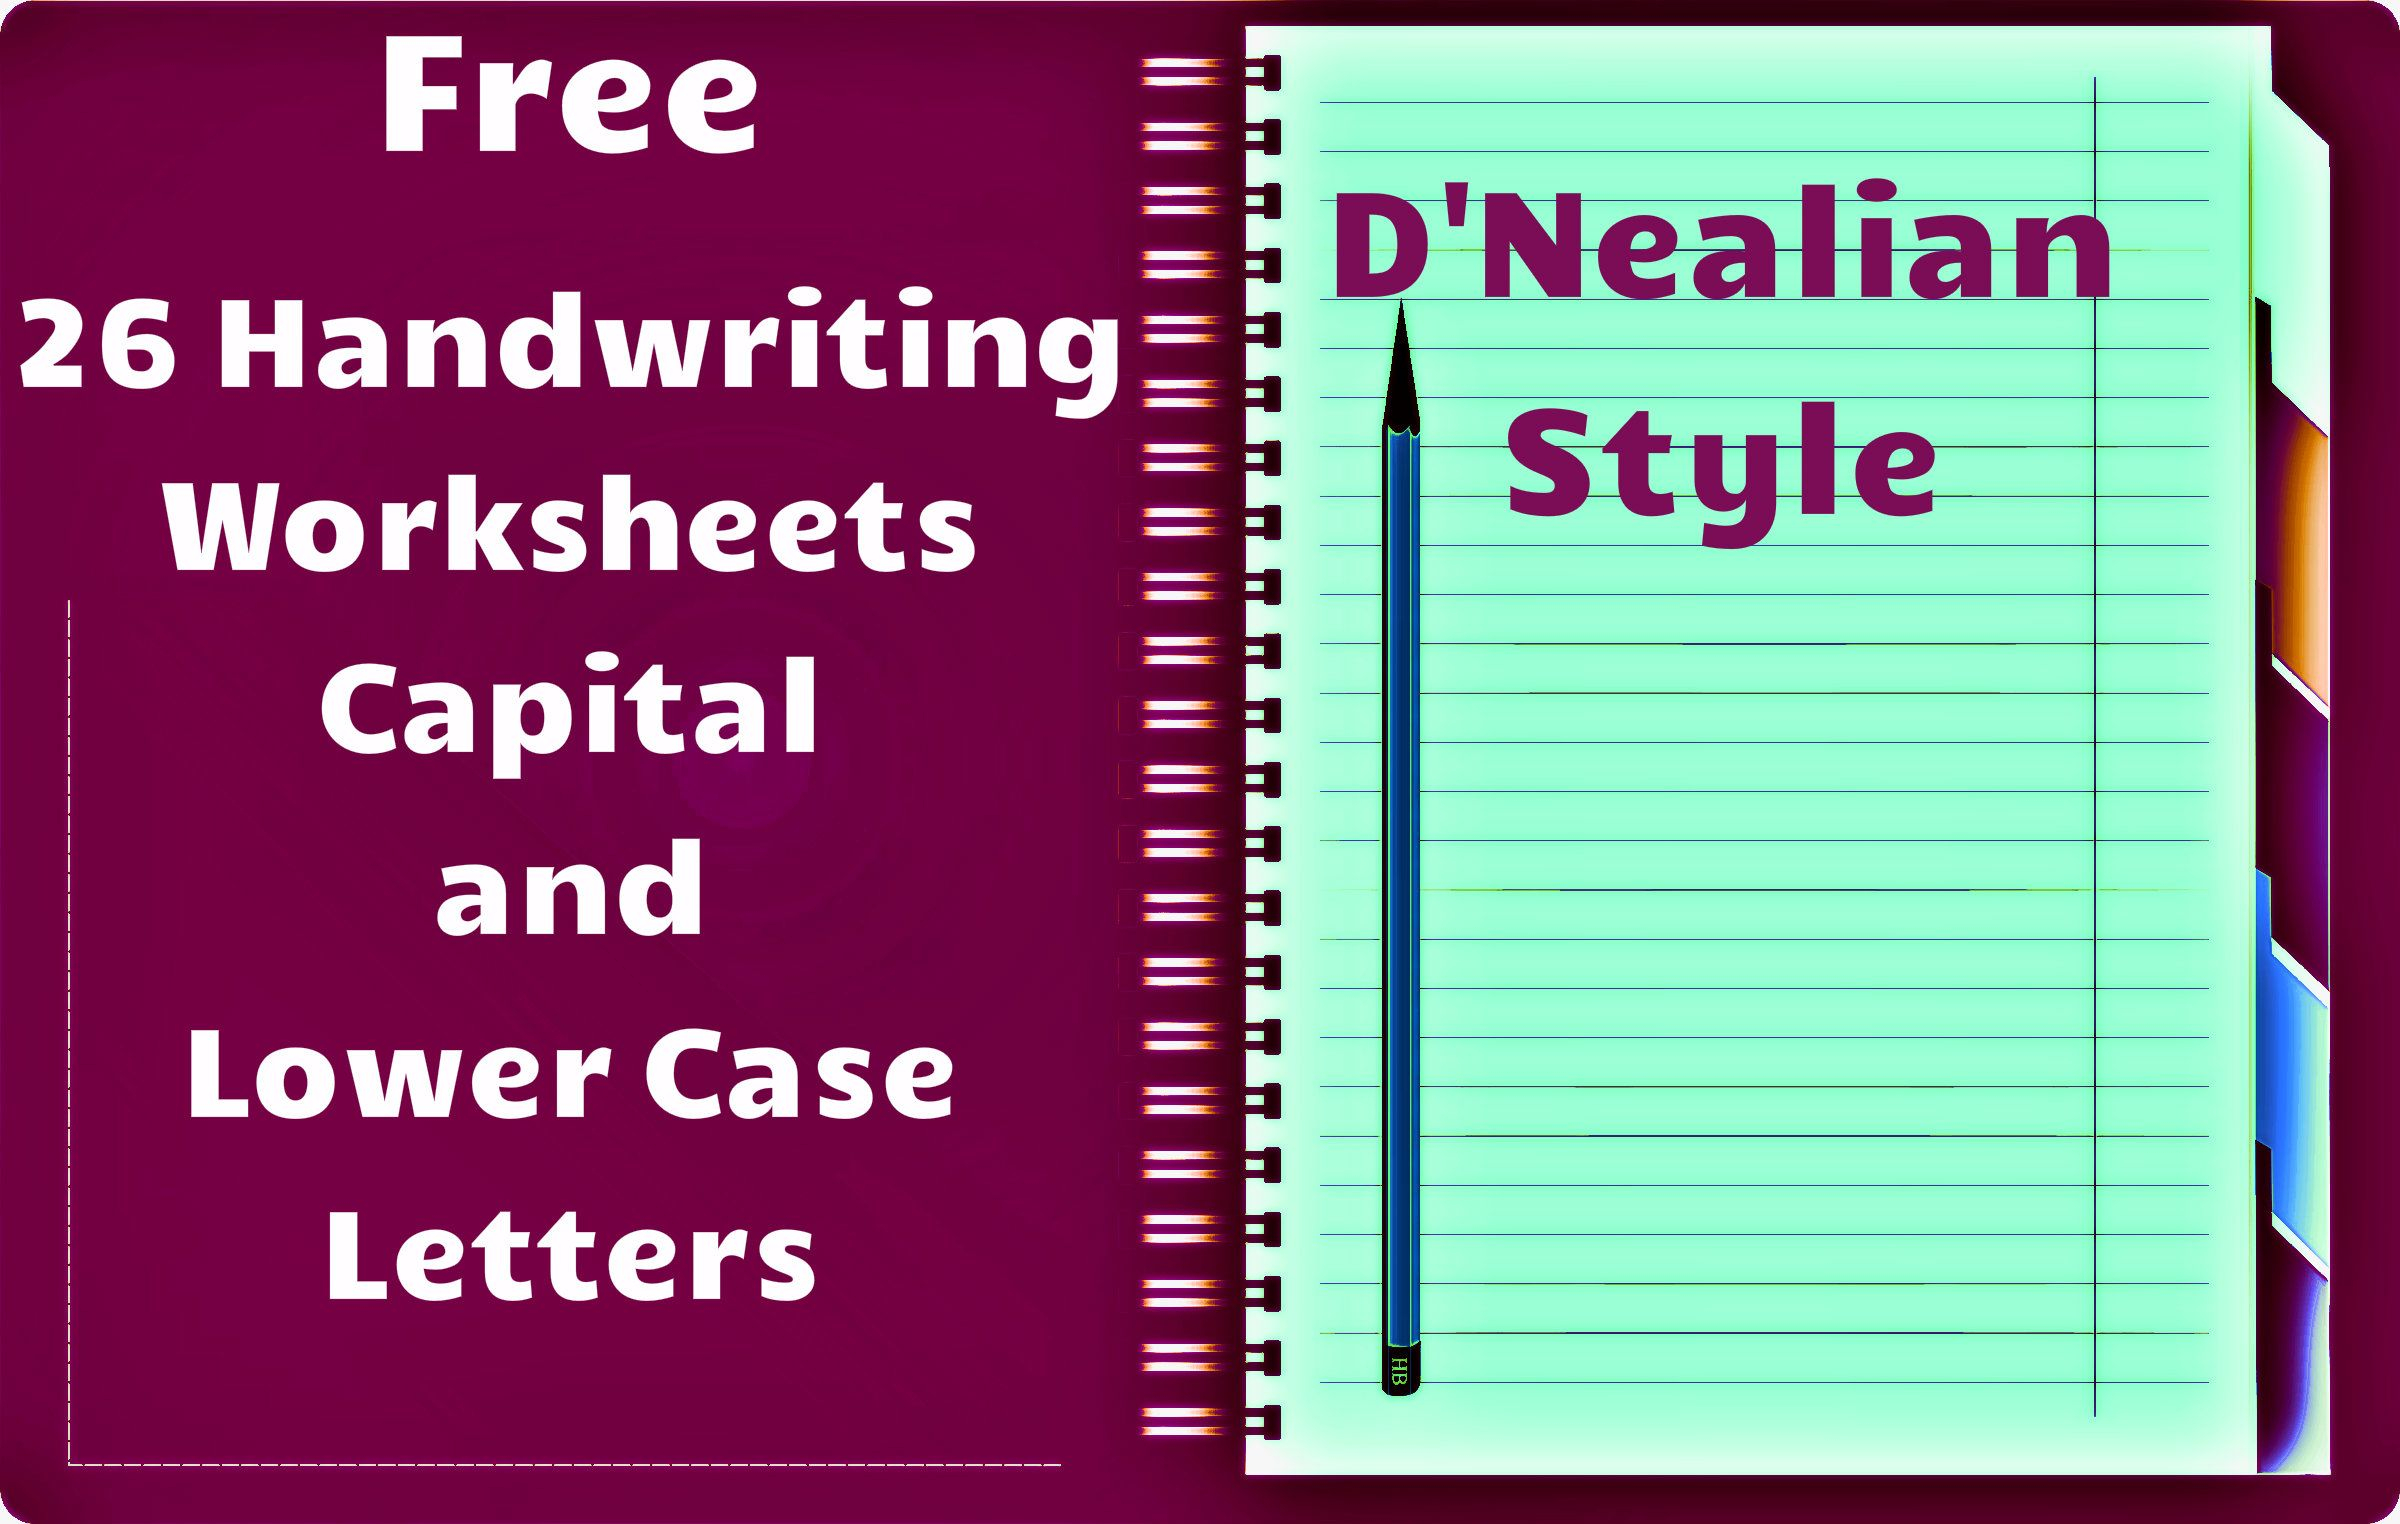 Free Handwriting Worksheets! Includes Worksheets For All